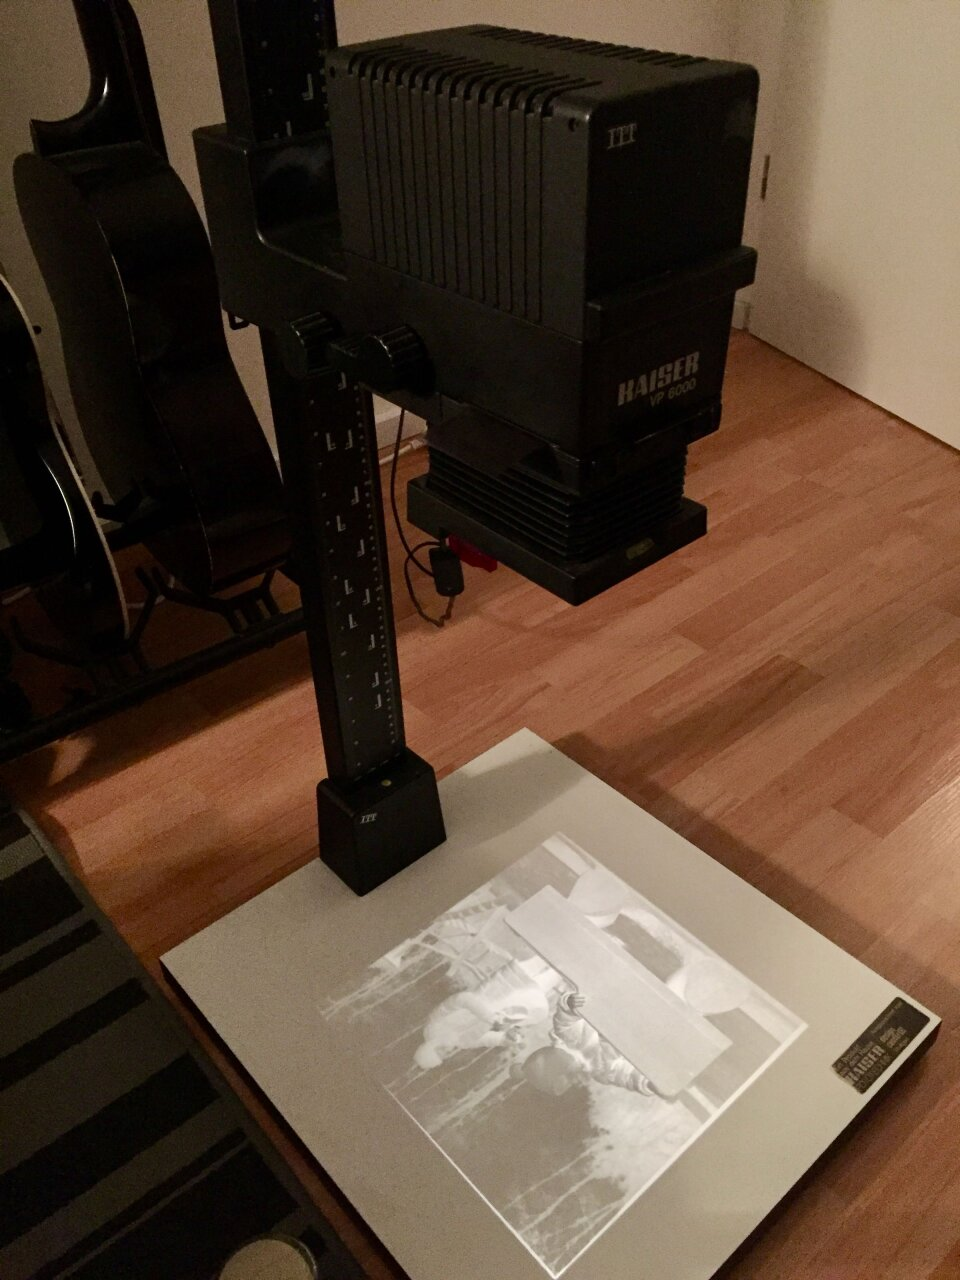 My new Kaiser VP-6000 enlarger in dim light projecting a image onto its base plate